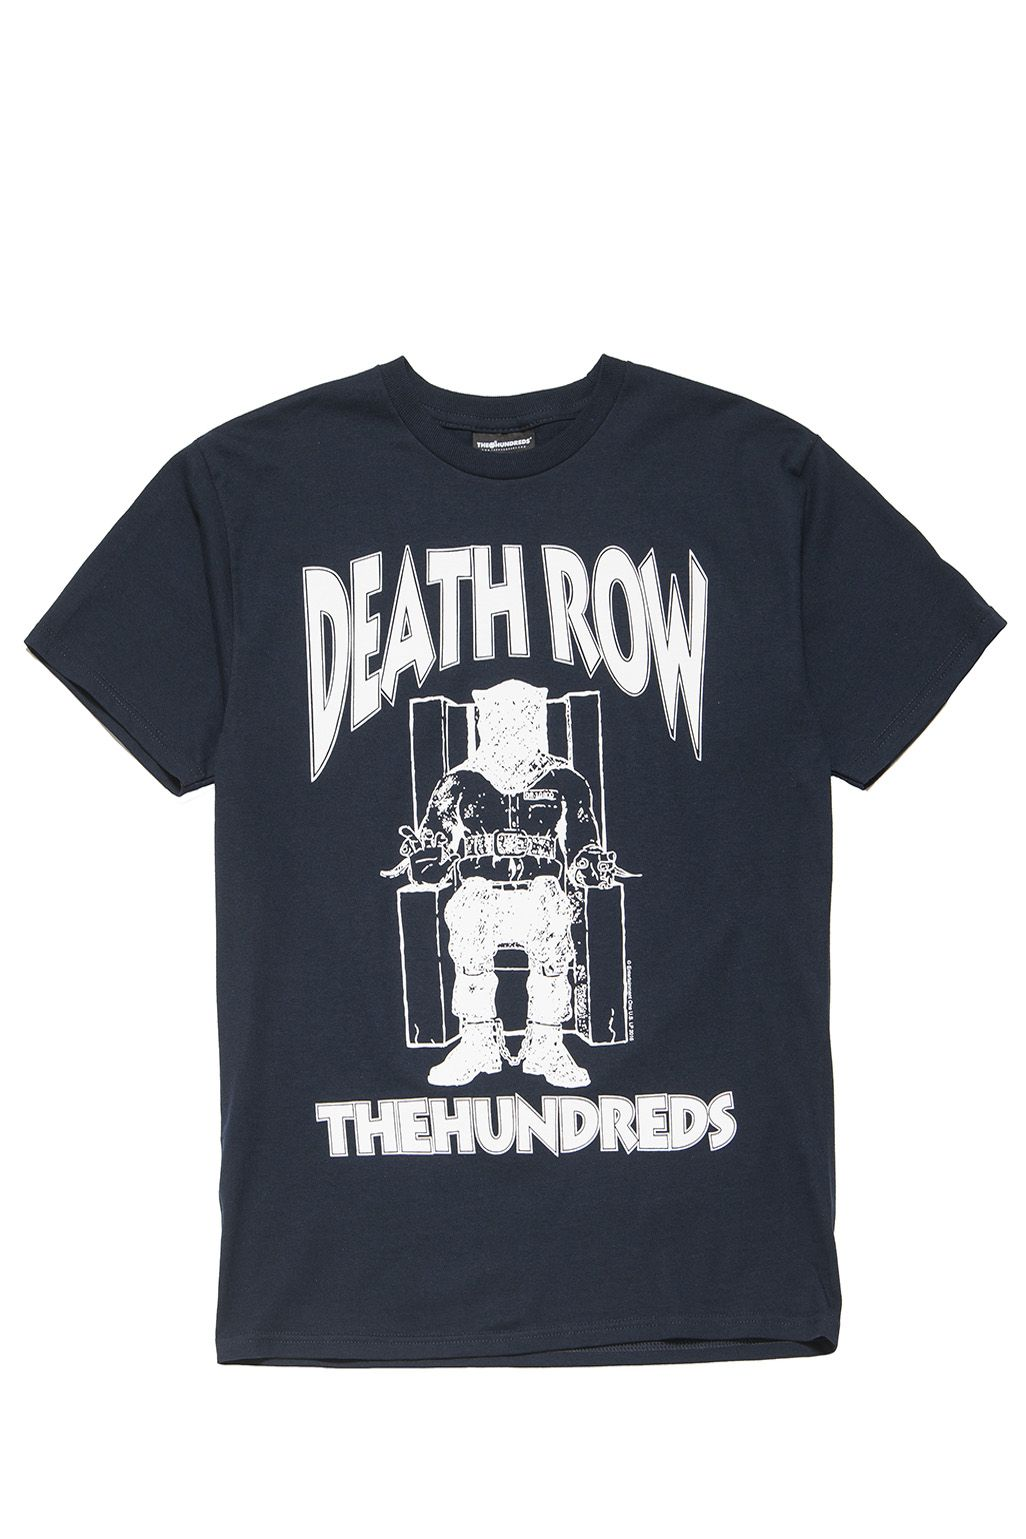 T-shirt - The Hundreds x Death Row